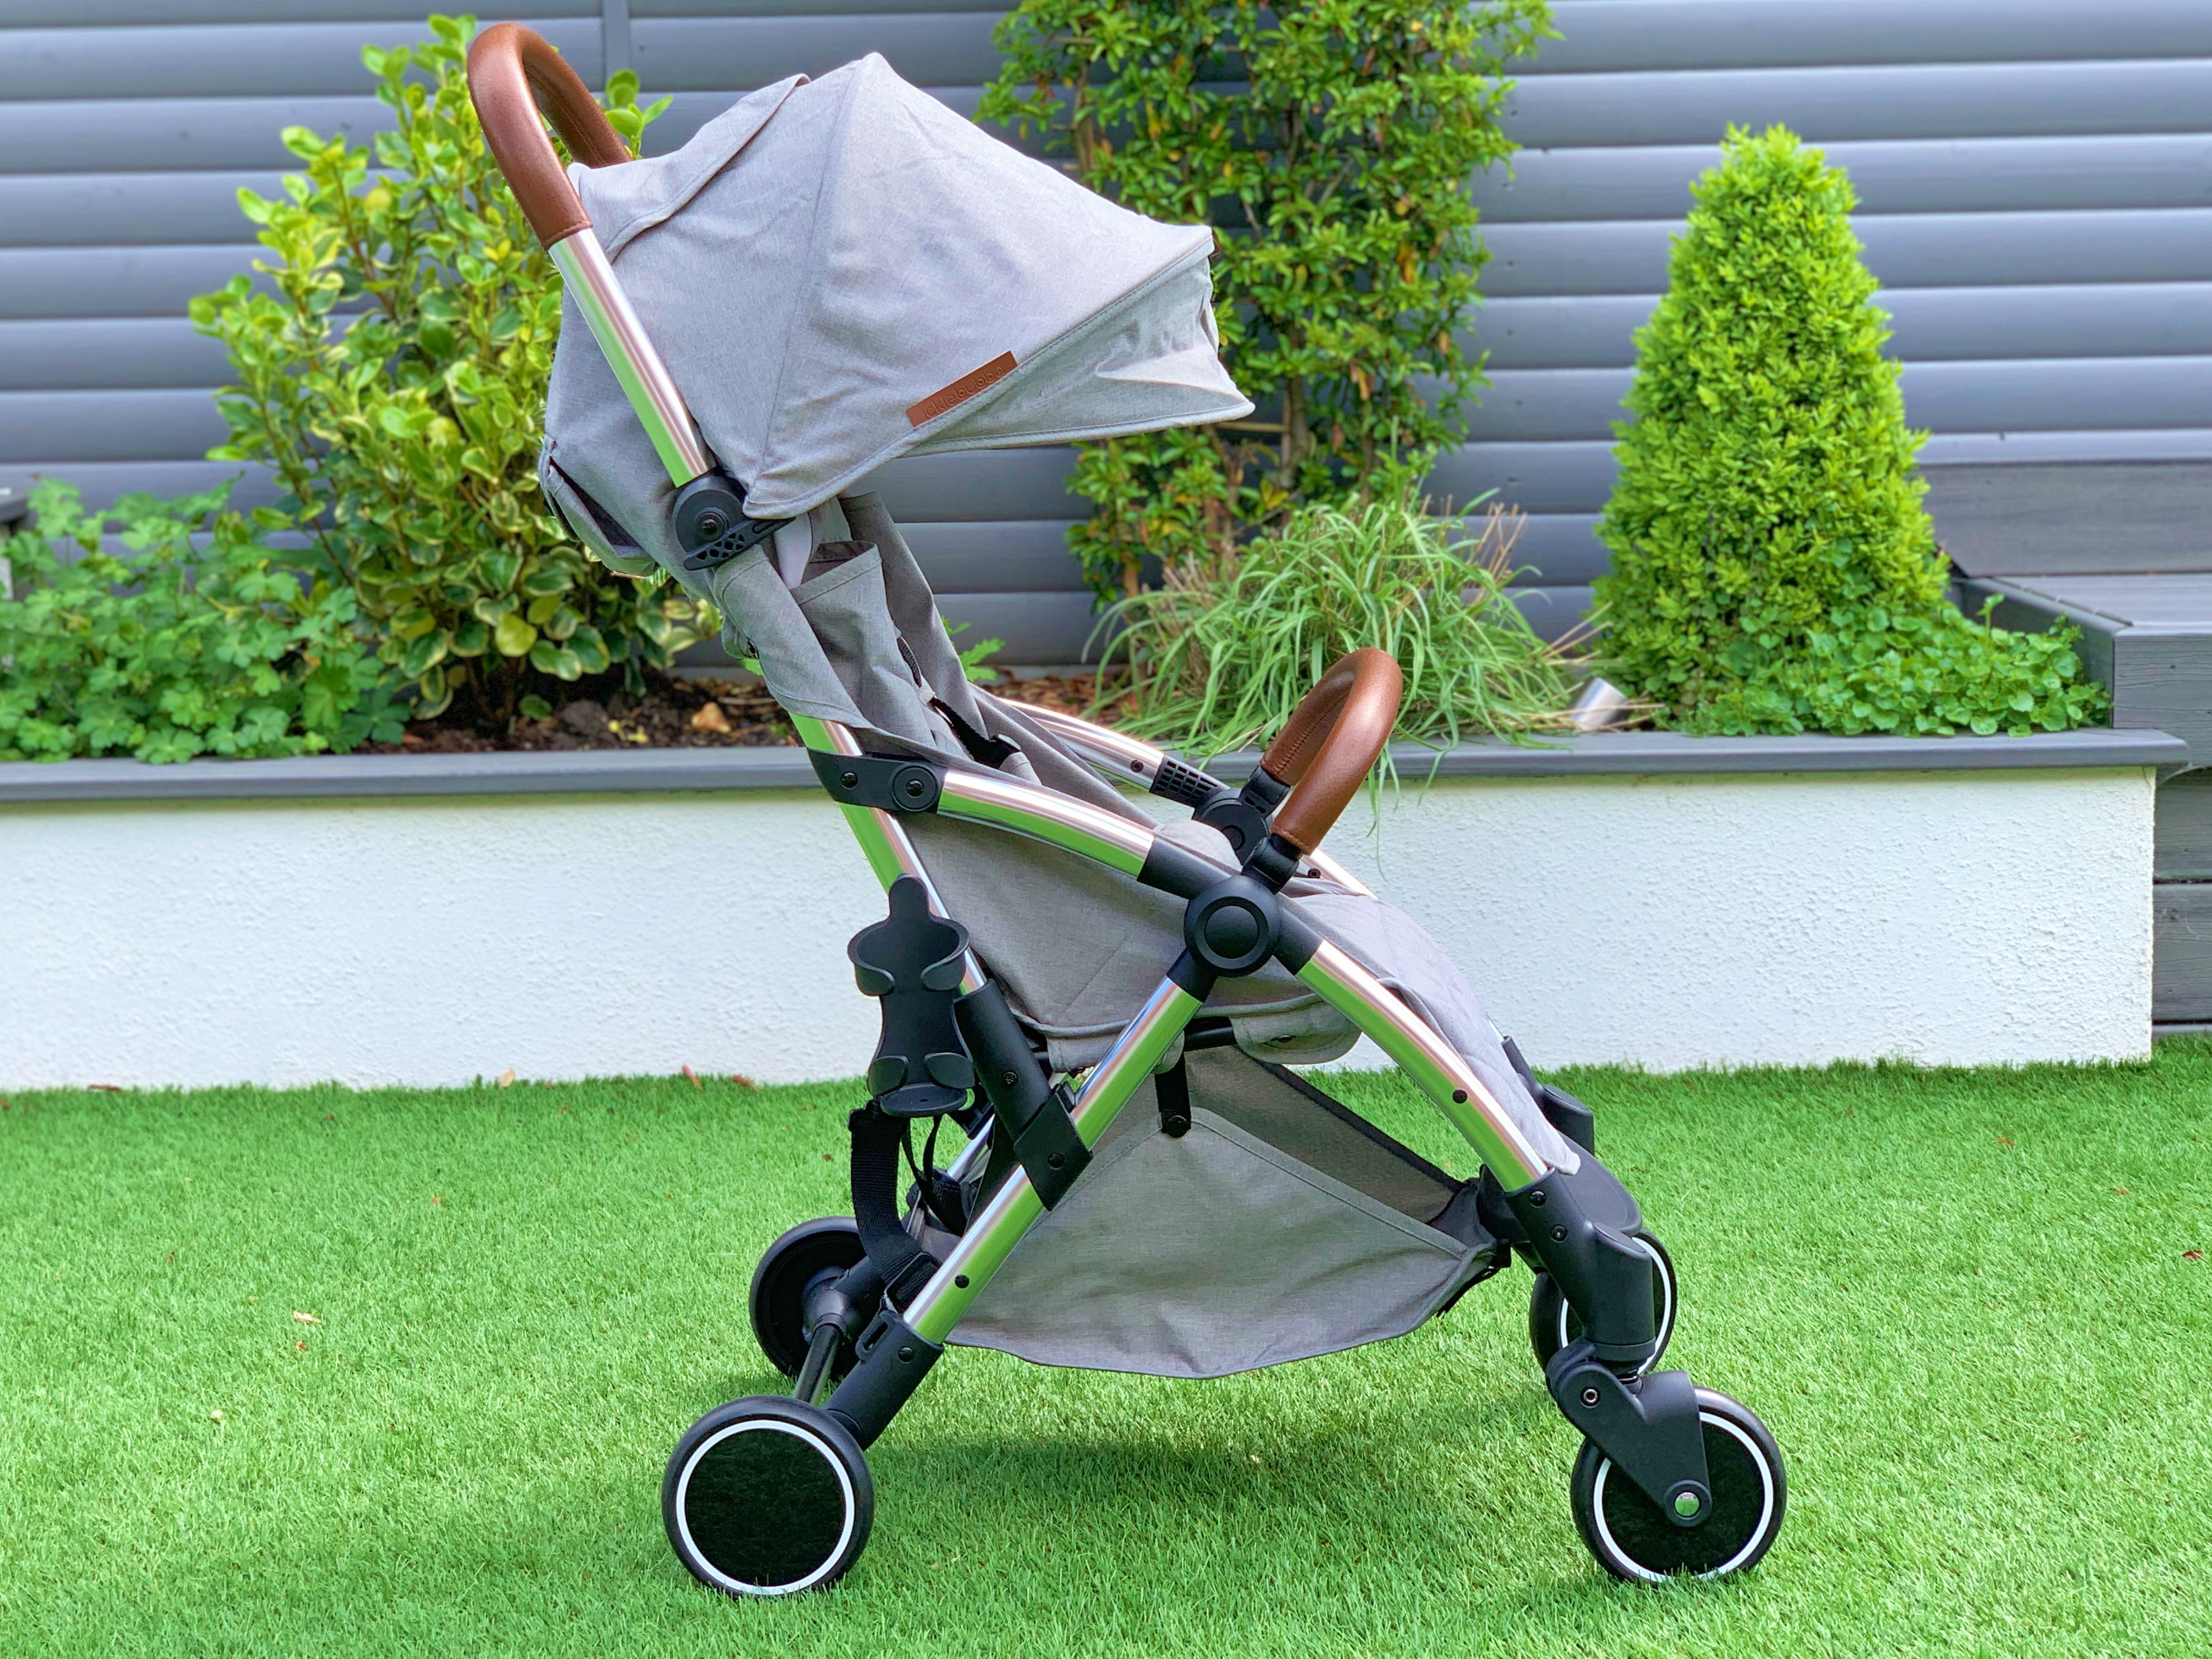 A grey pushchair with brown leather on the handle on bumper bar. It is on some grass with a raised bed behind it.